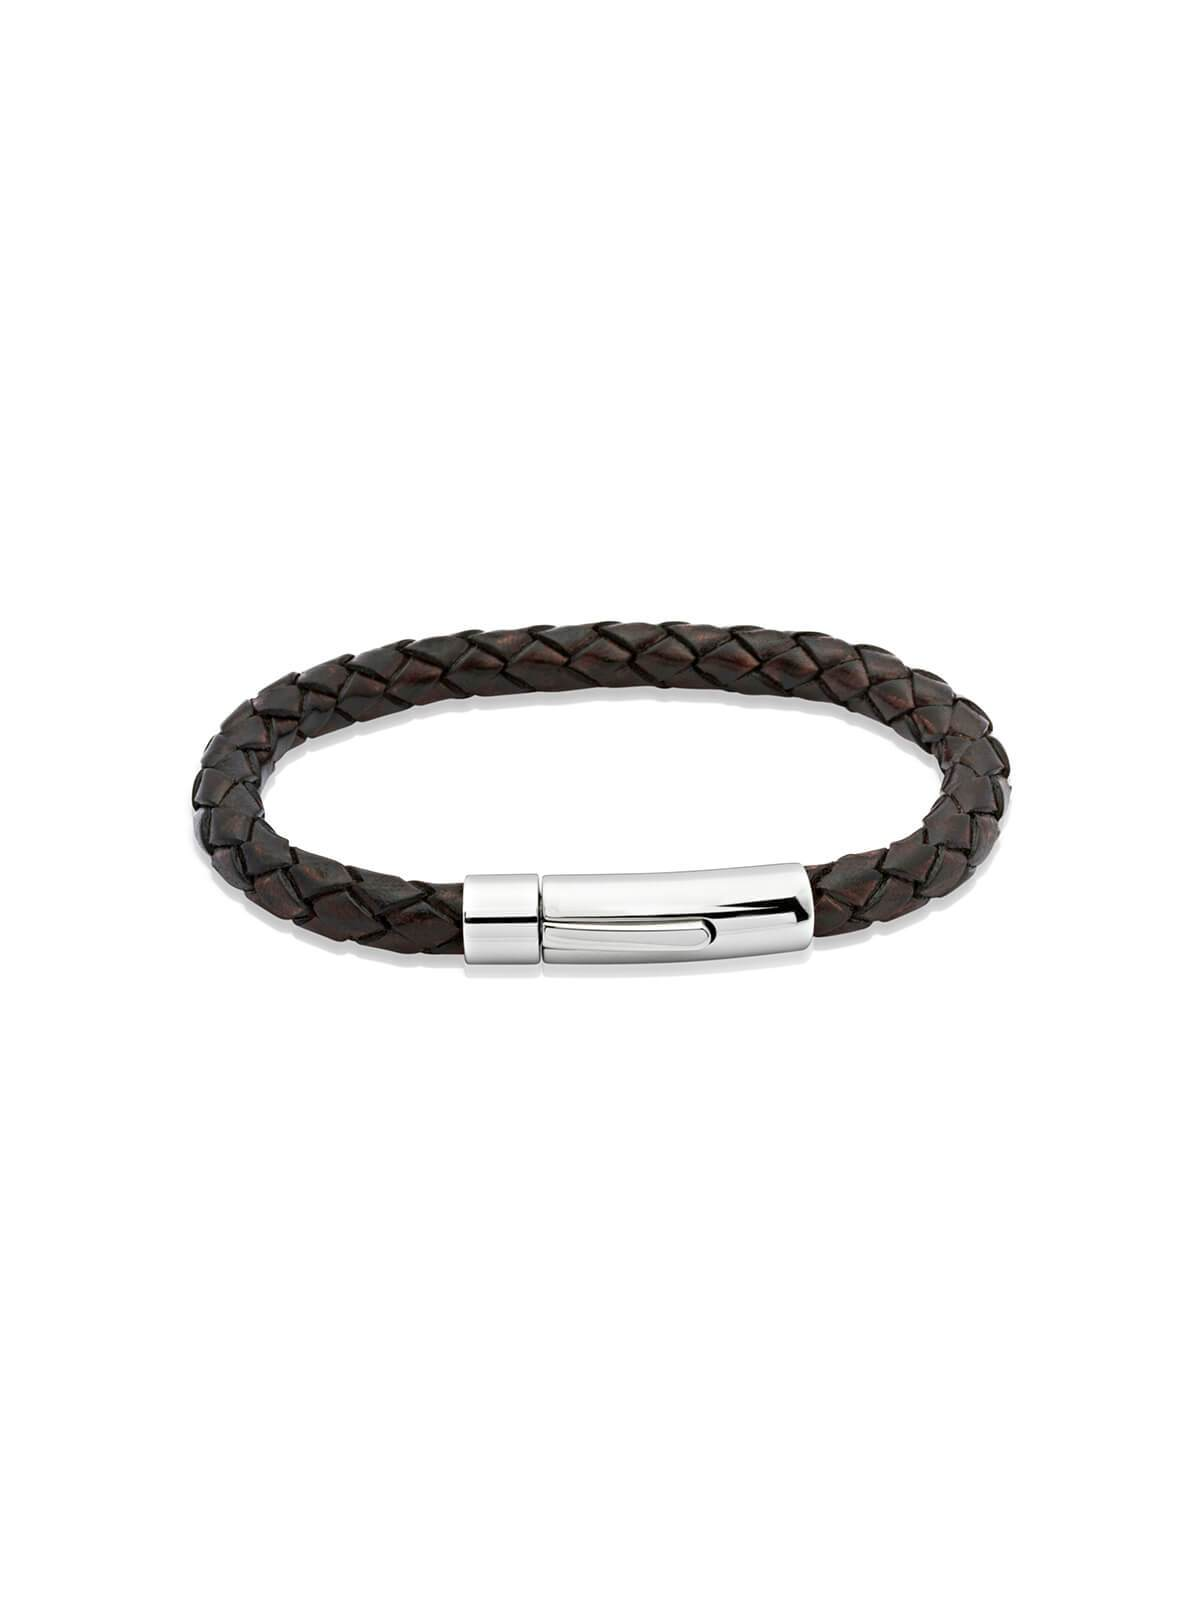 Unique & Co. 23cm Antique Brown Leather Bracelet A40ADB/23CM